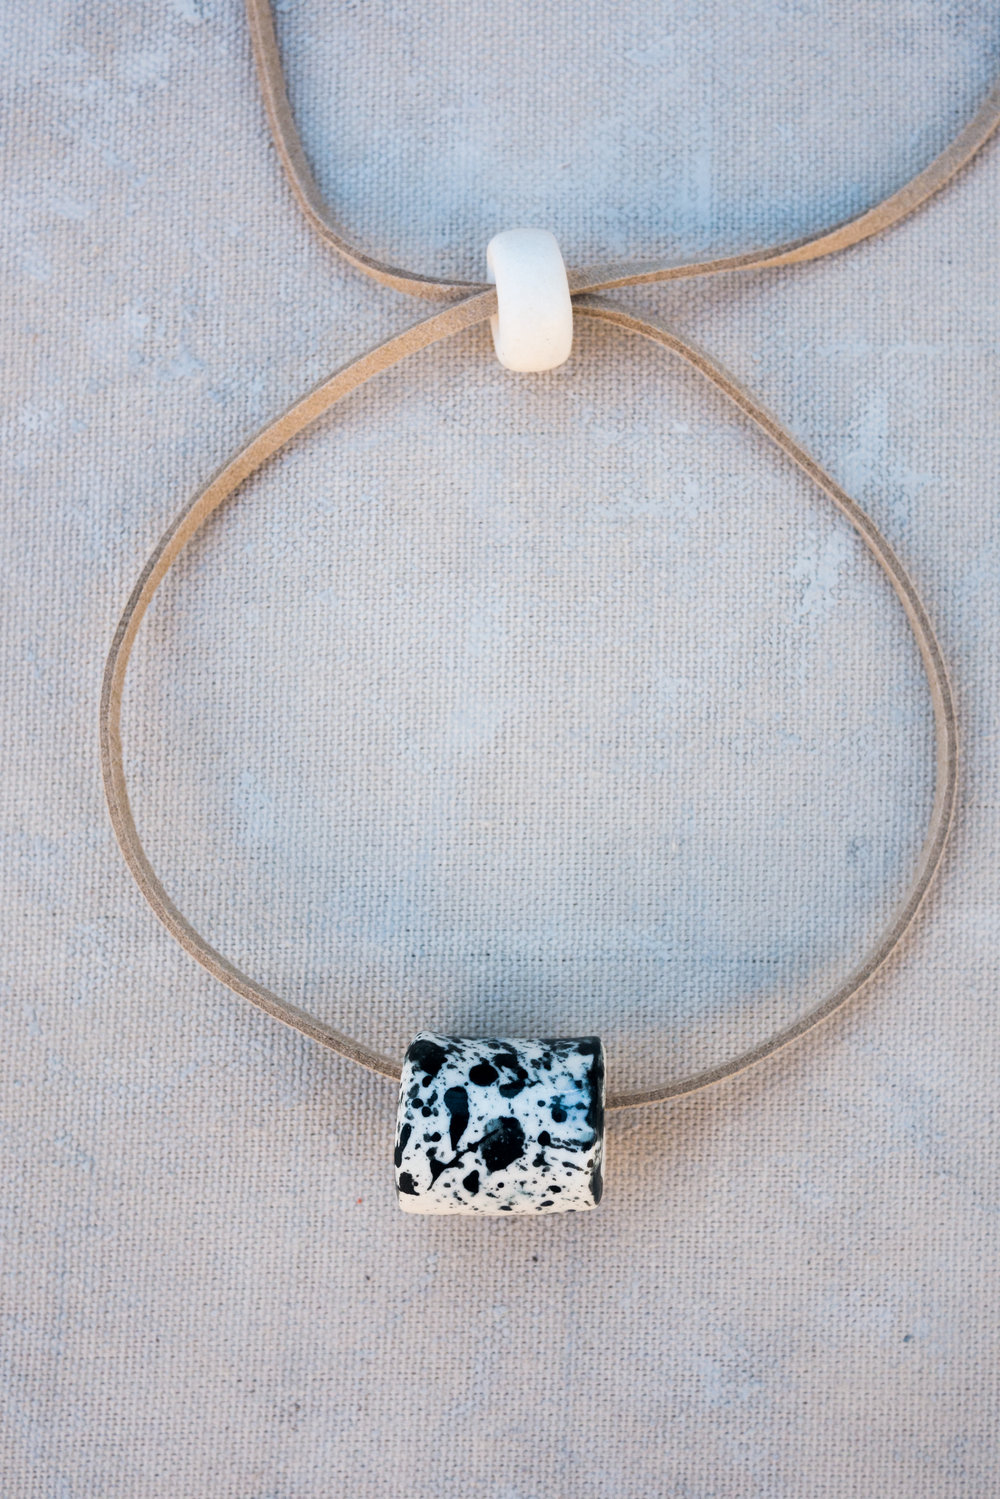 Black Ink Tubular Necklace made with porcelain clay by Little Clay Studio in Austin, Texas.